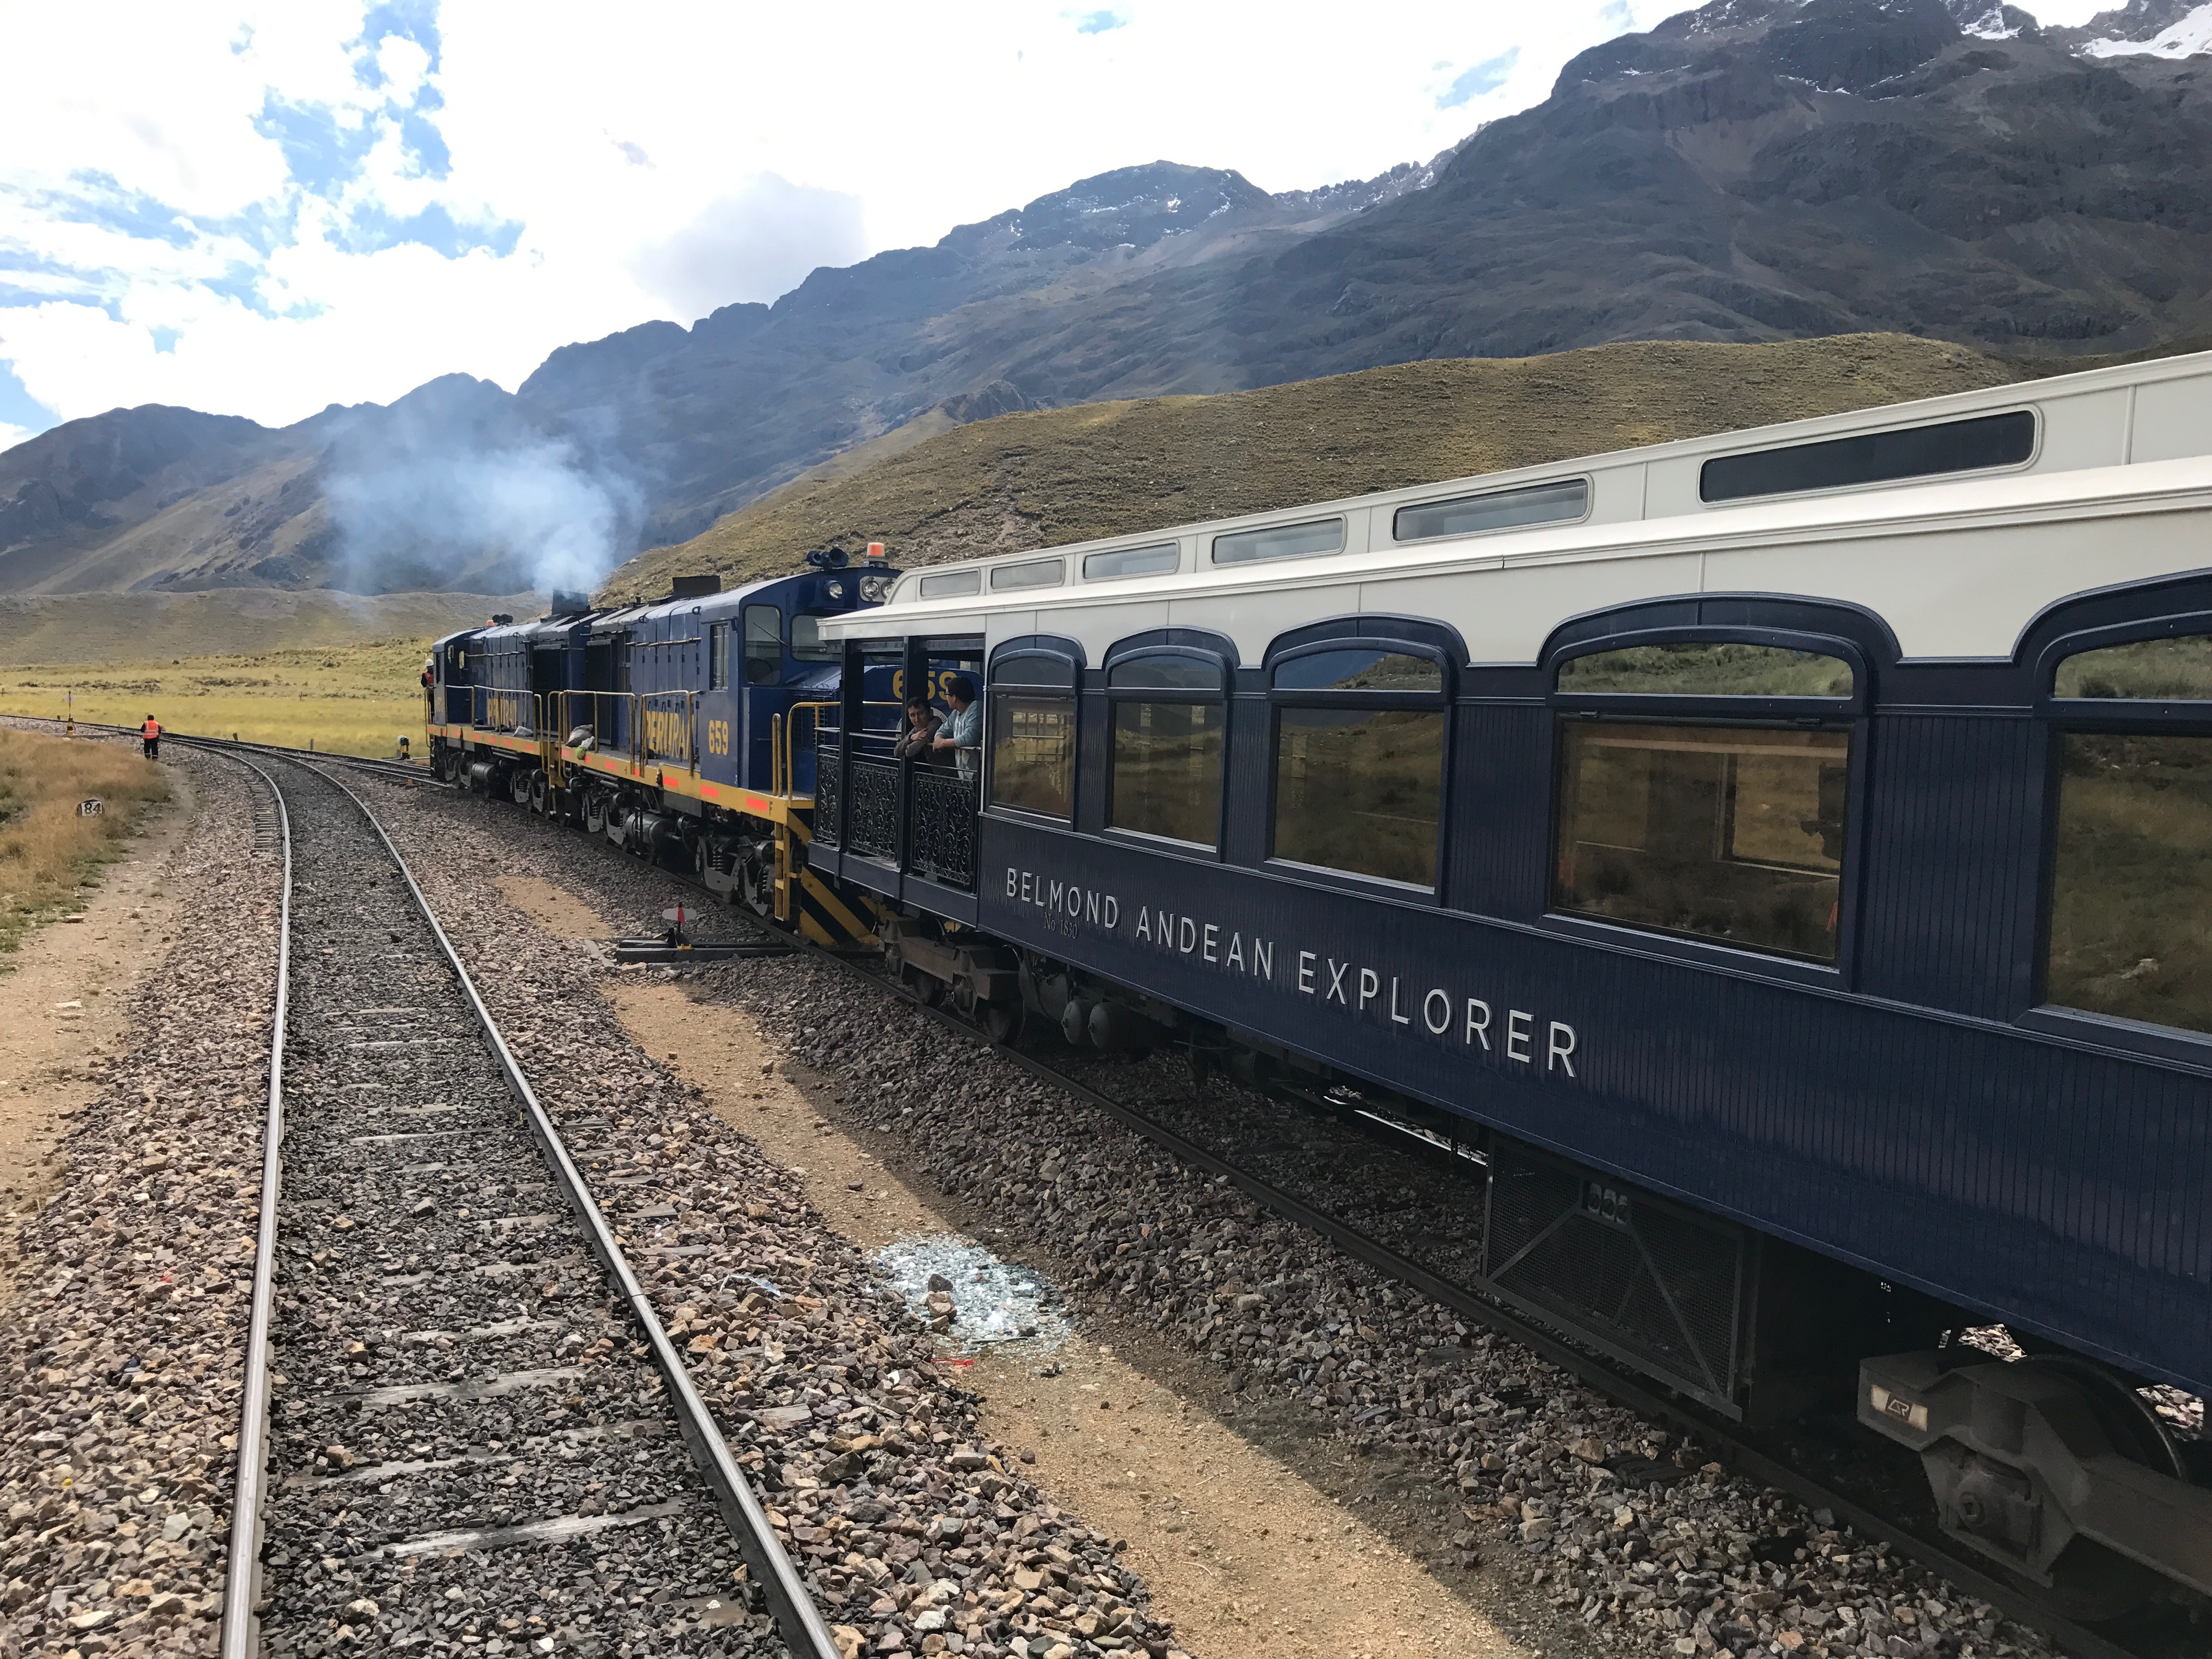 The new Belmond Andean Explorer